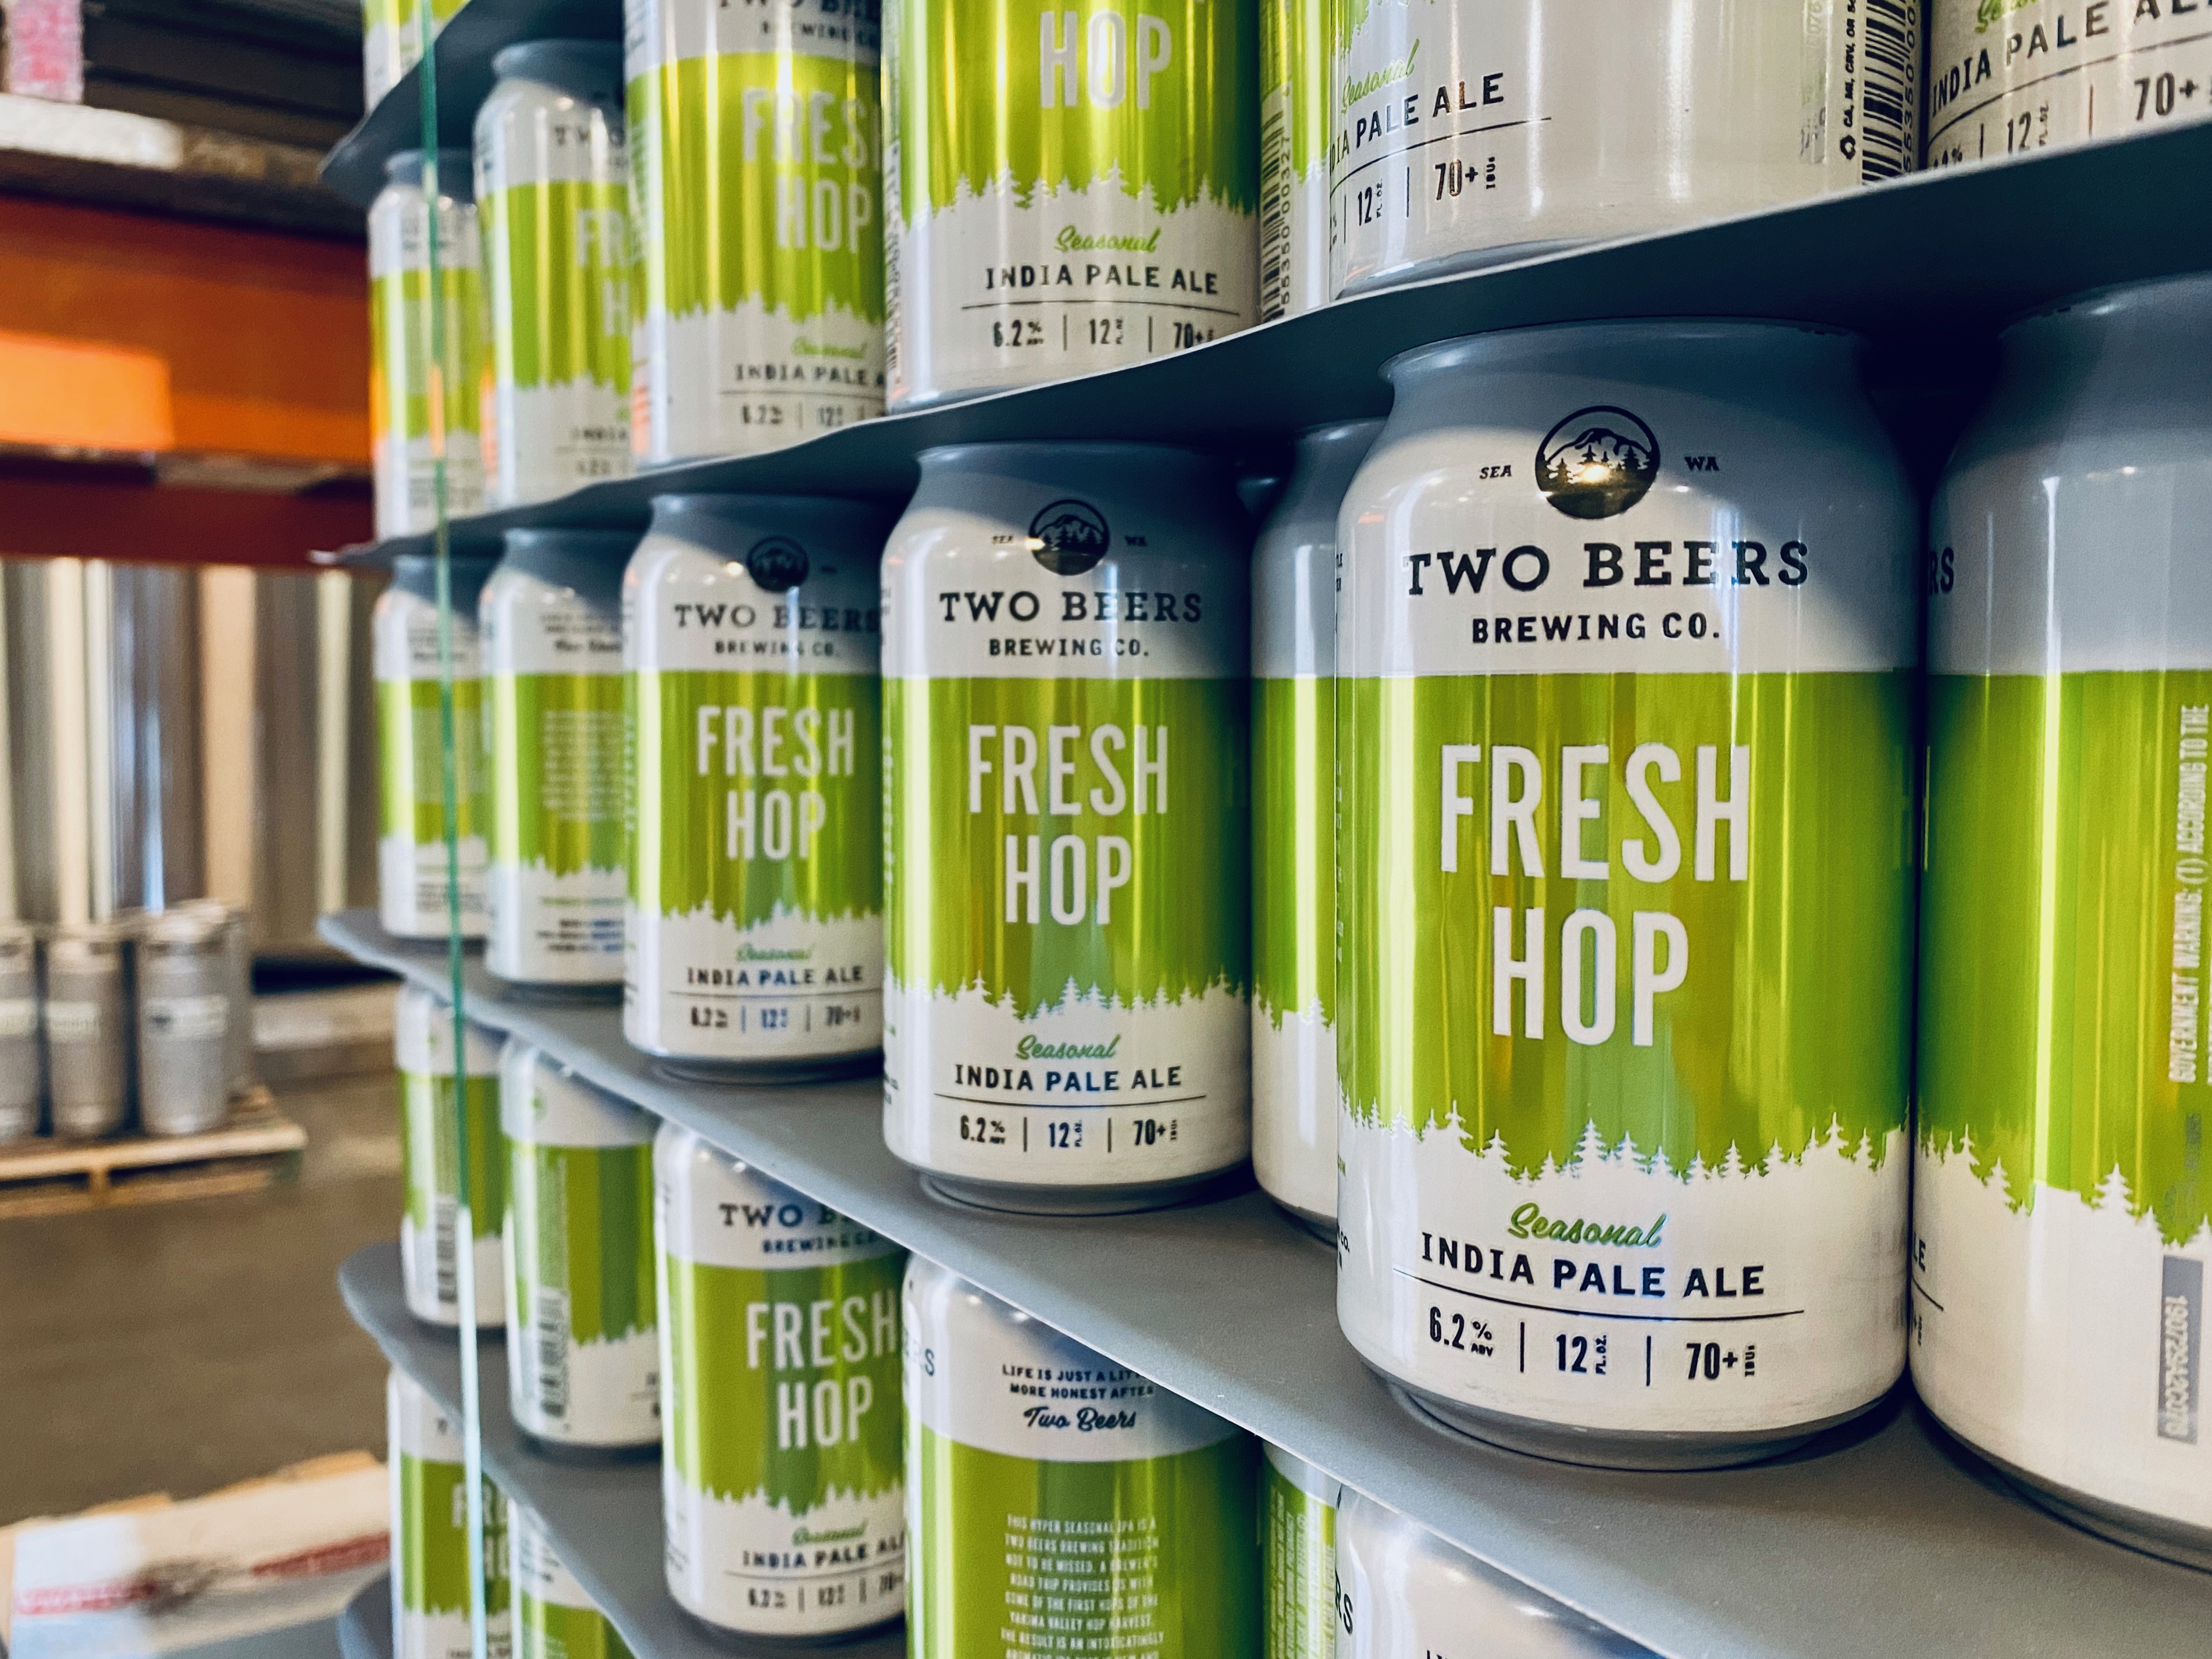 Stacks of empty cans of Fresh Hop IPA that will be filled in the coming days. (image courtesy of Two Beers Brewing Co.)